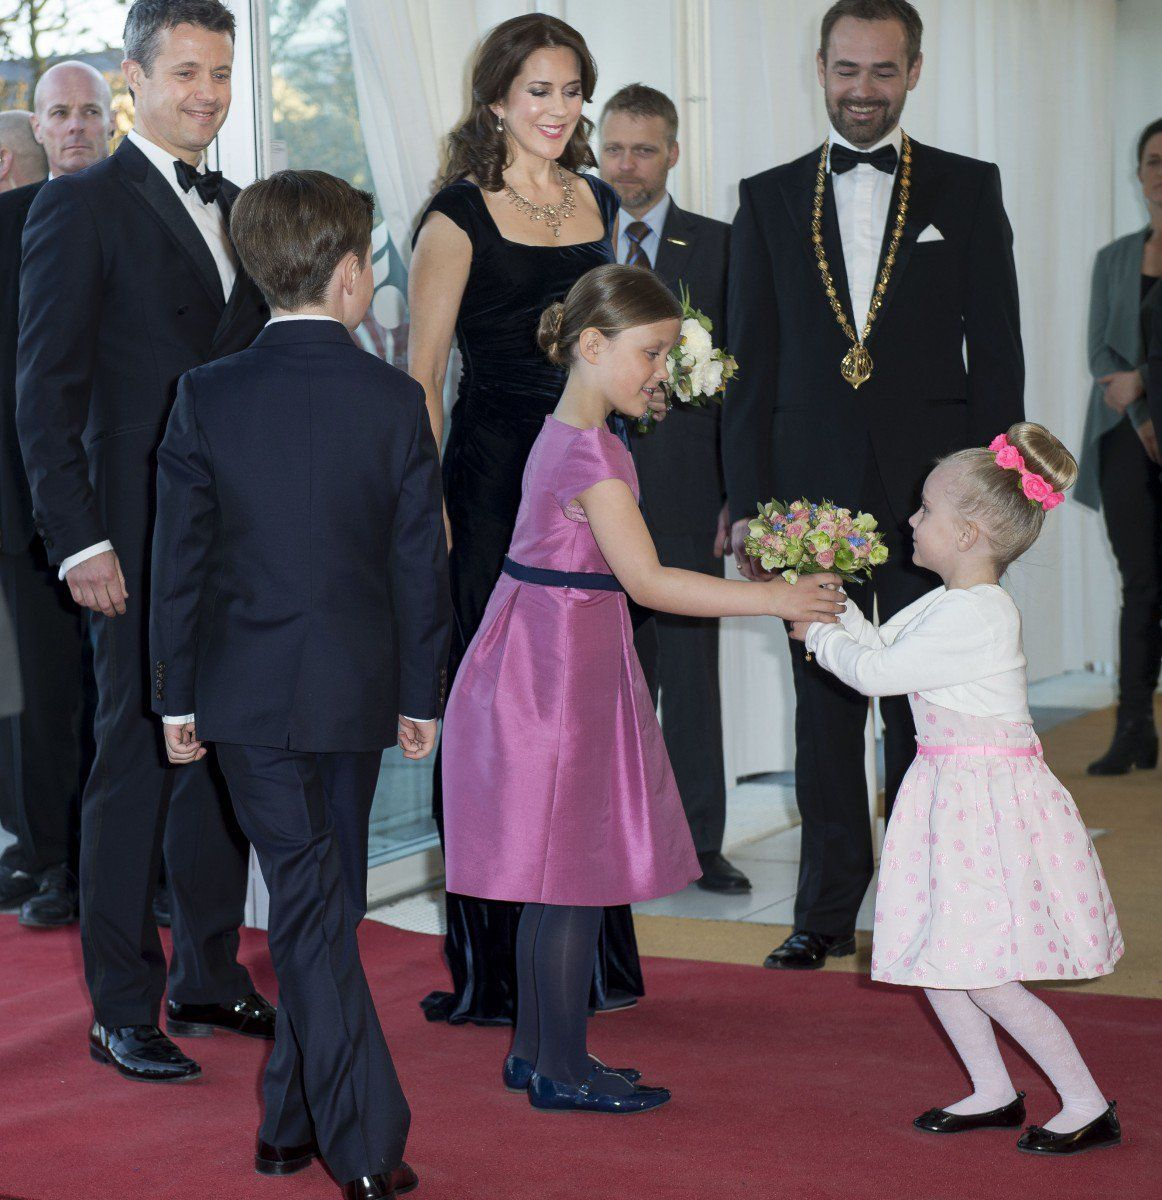 Princess Isabella arrived with her mum, dad and older brother and was given a bouquet of flowers by a girl who looked to be just a little younger than the Princess herself.